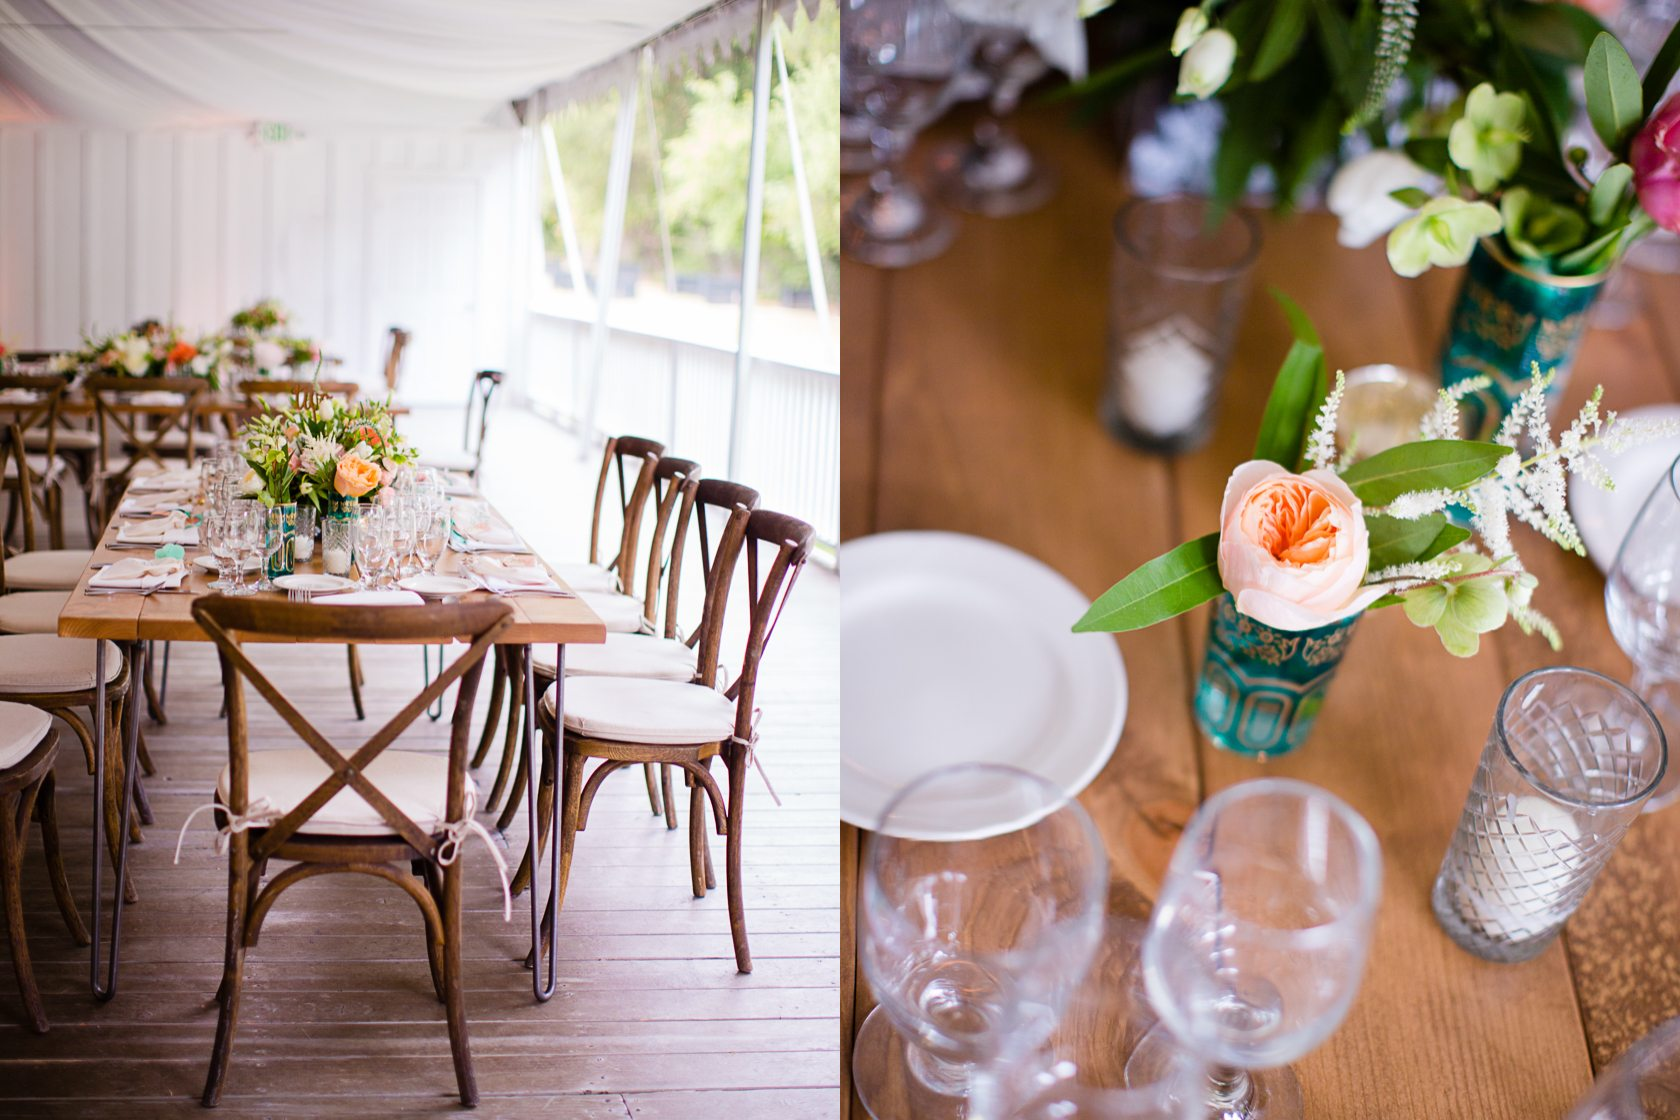 The_Printed_Palette_Wedding_at_Calamigos_Ranch_104.jpg